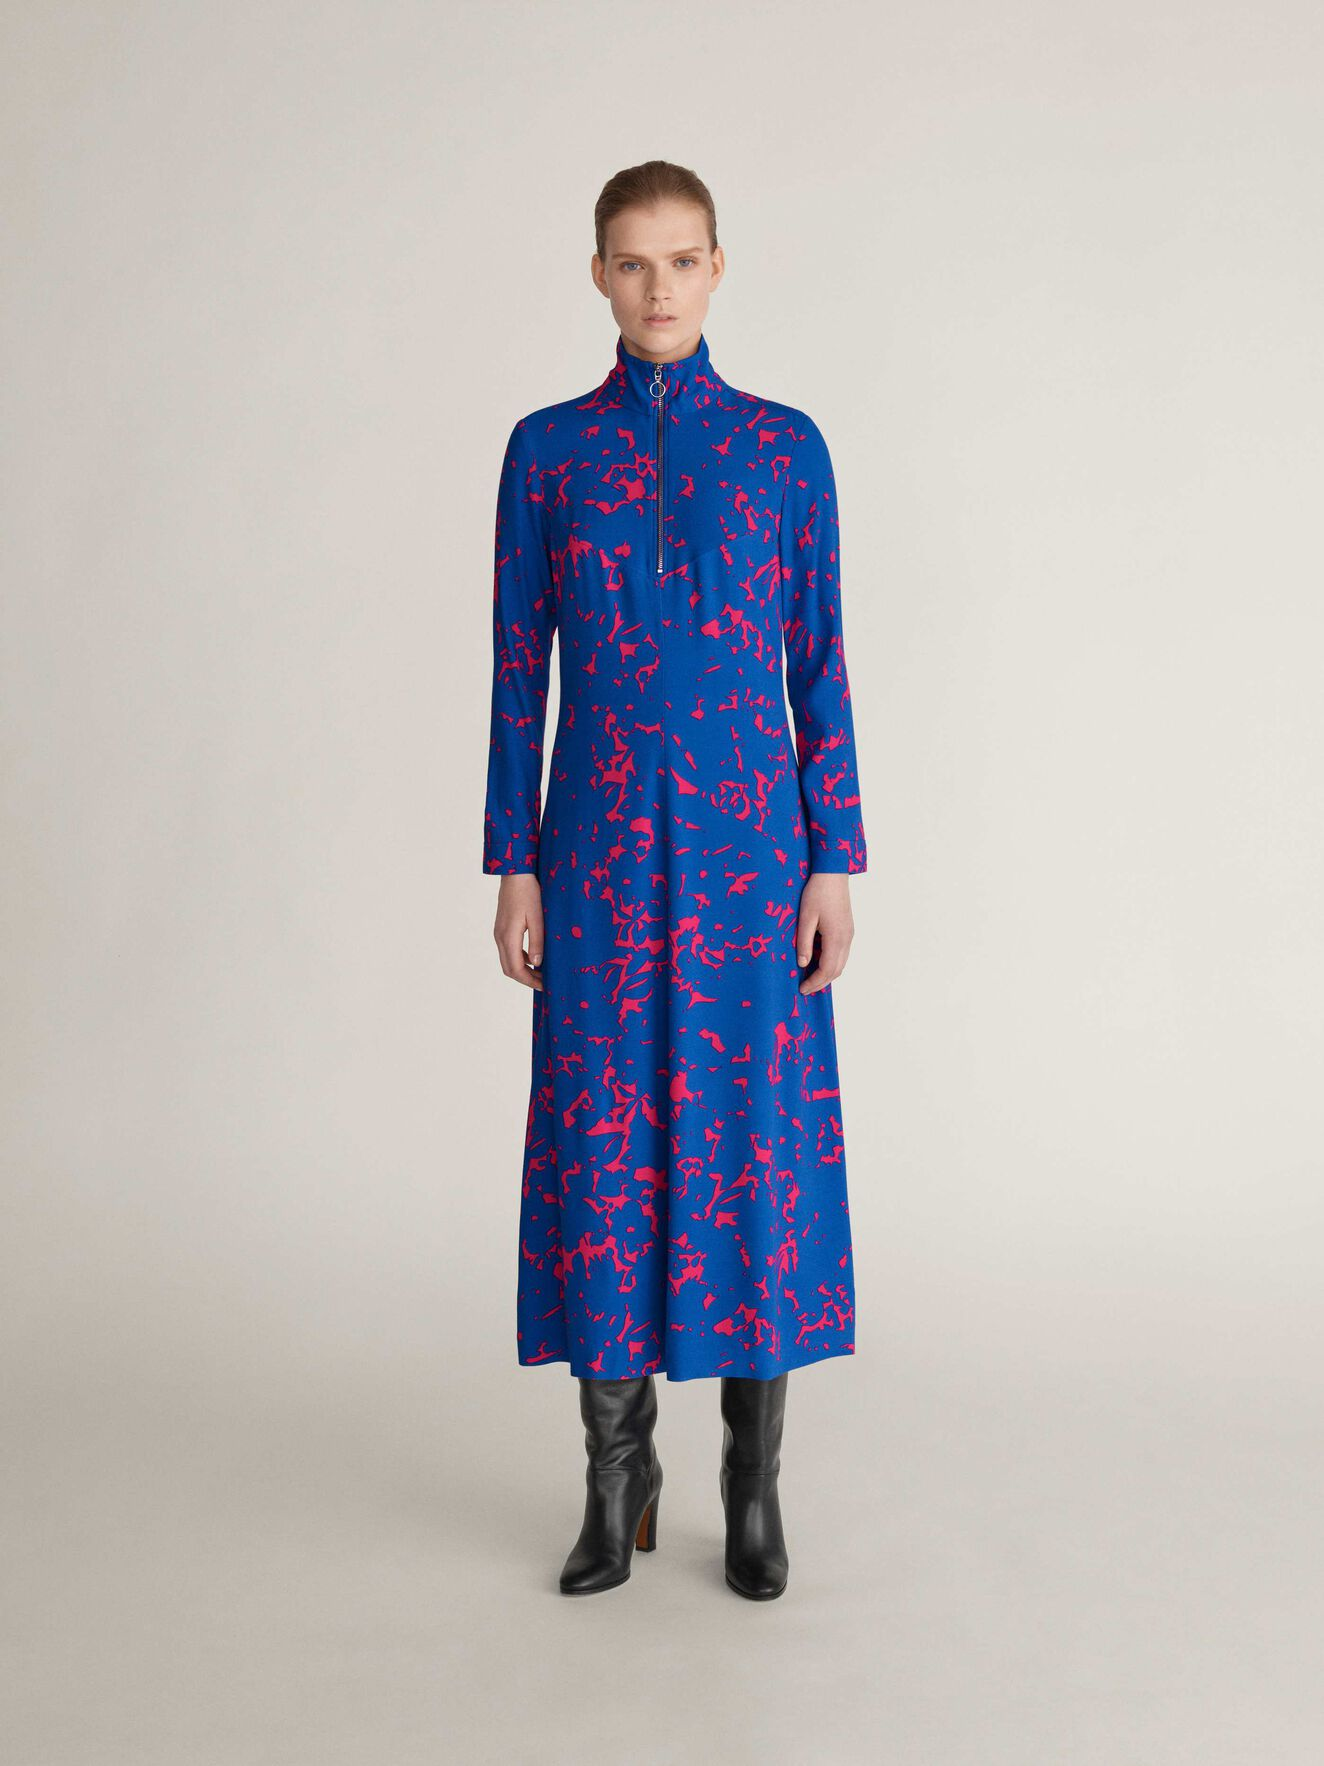 Cupula P Dress in ARTWORK from Tiger of Sweden